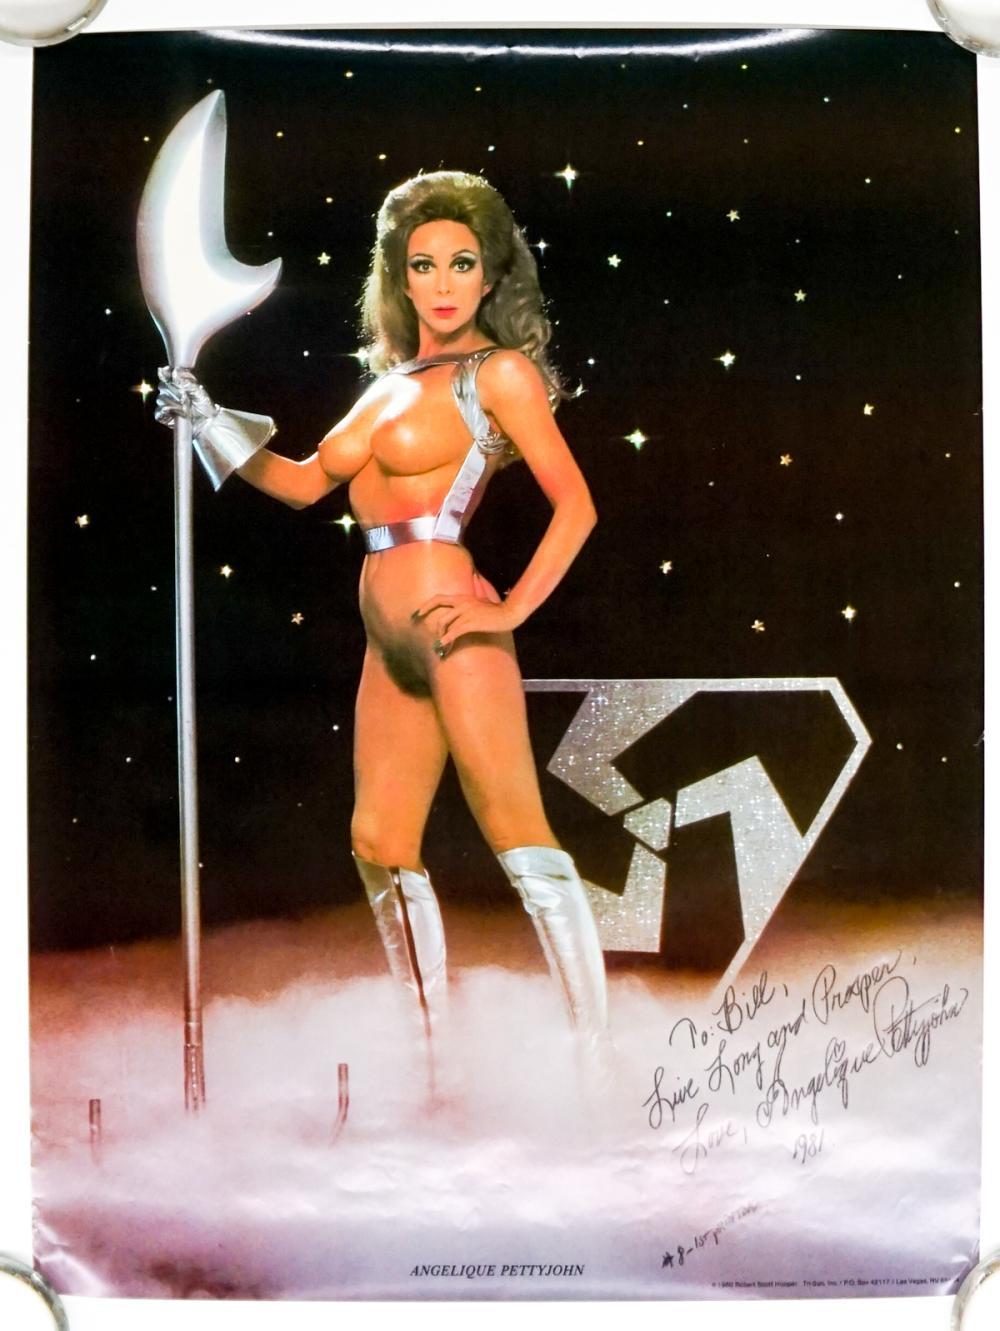 1980 Signed Angelique Pettyjohn Nude Poster